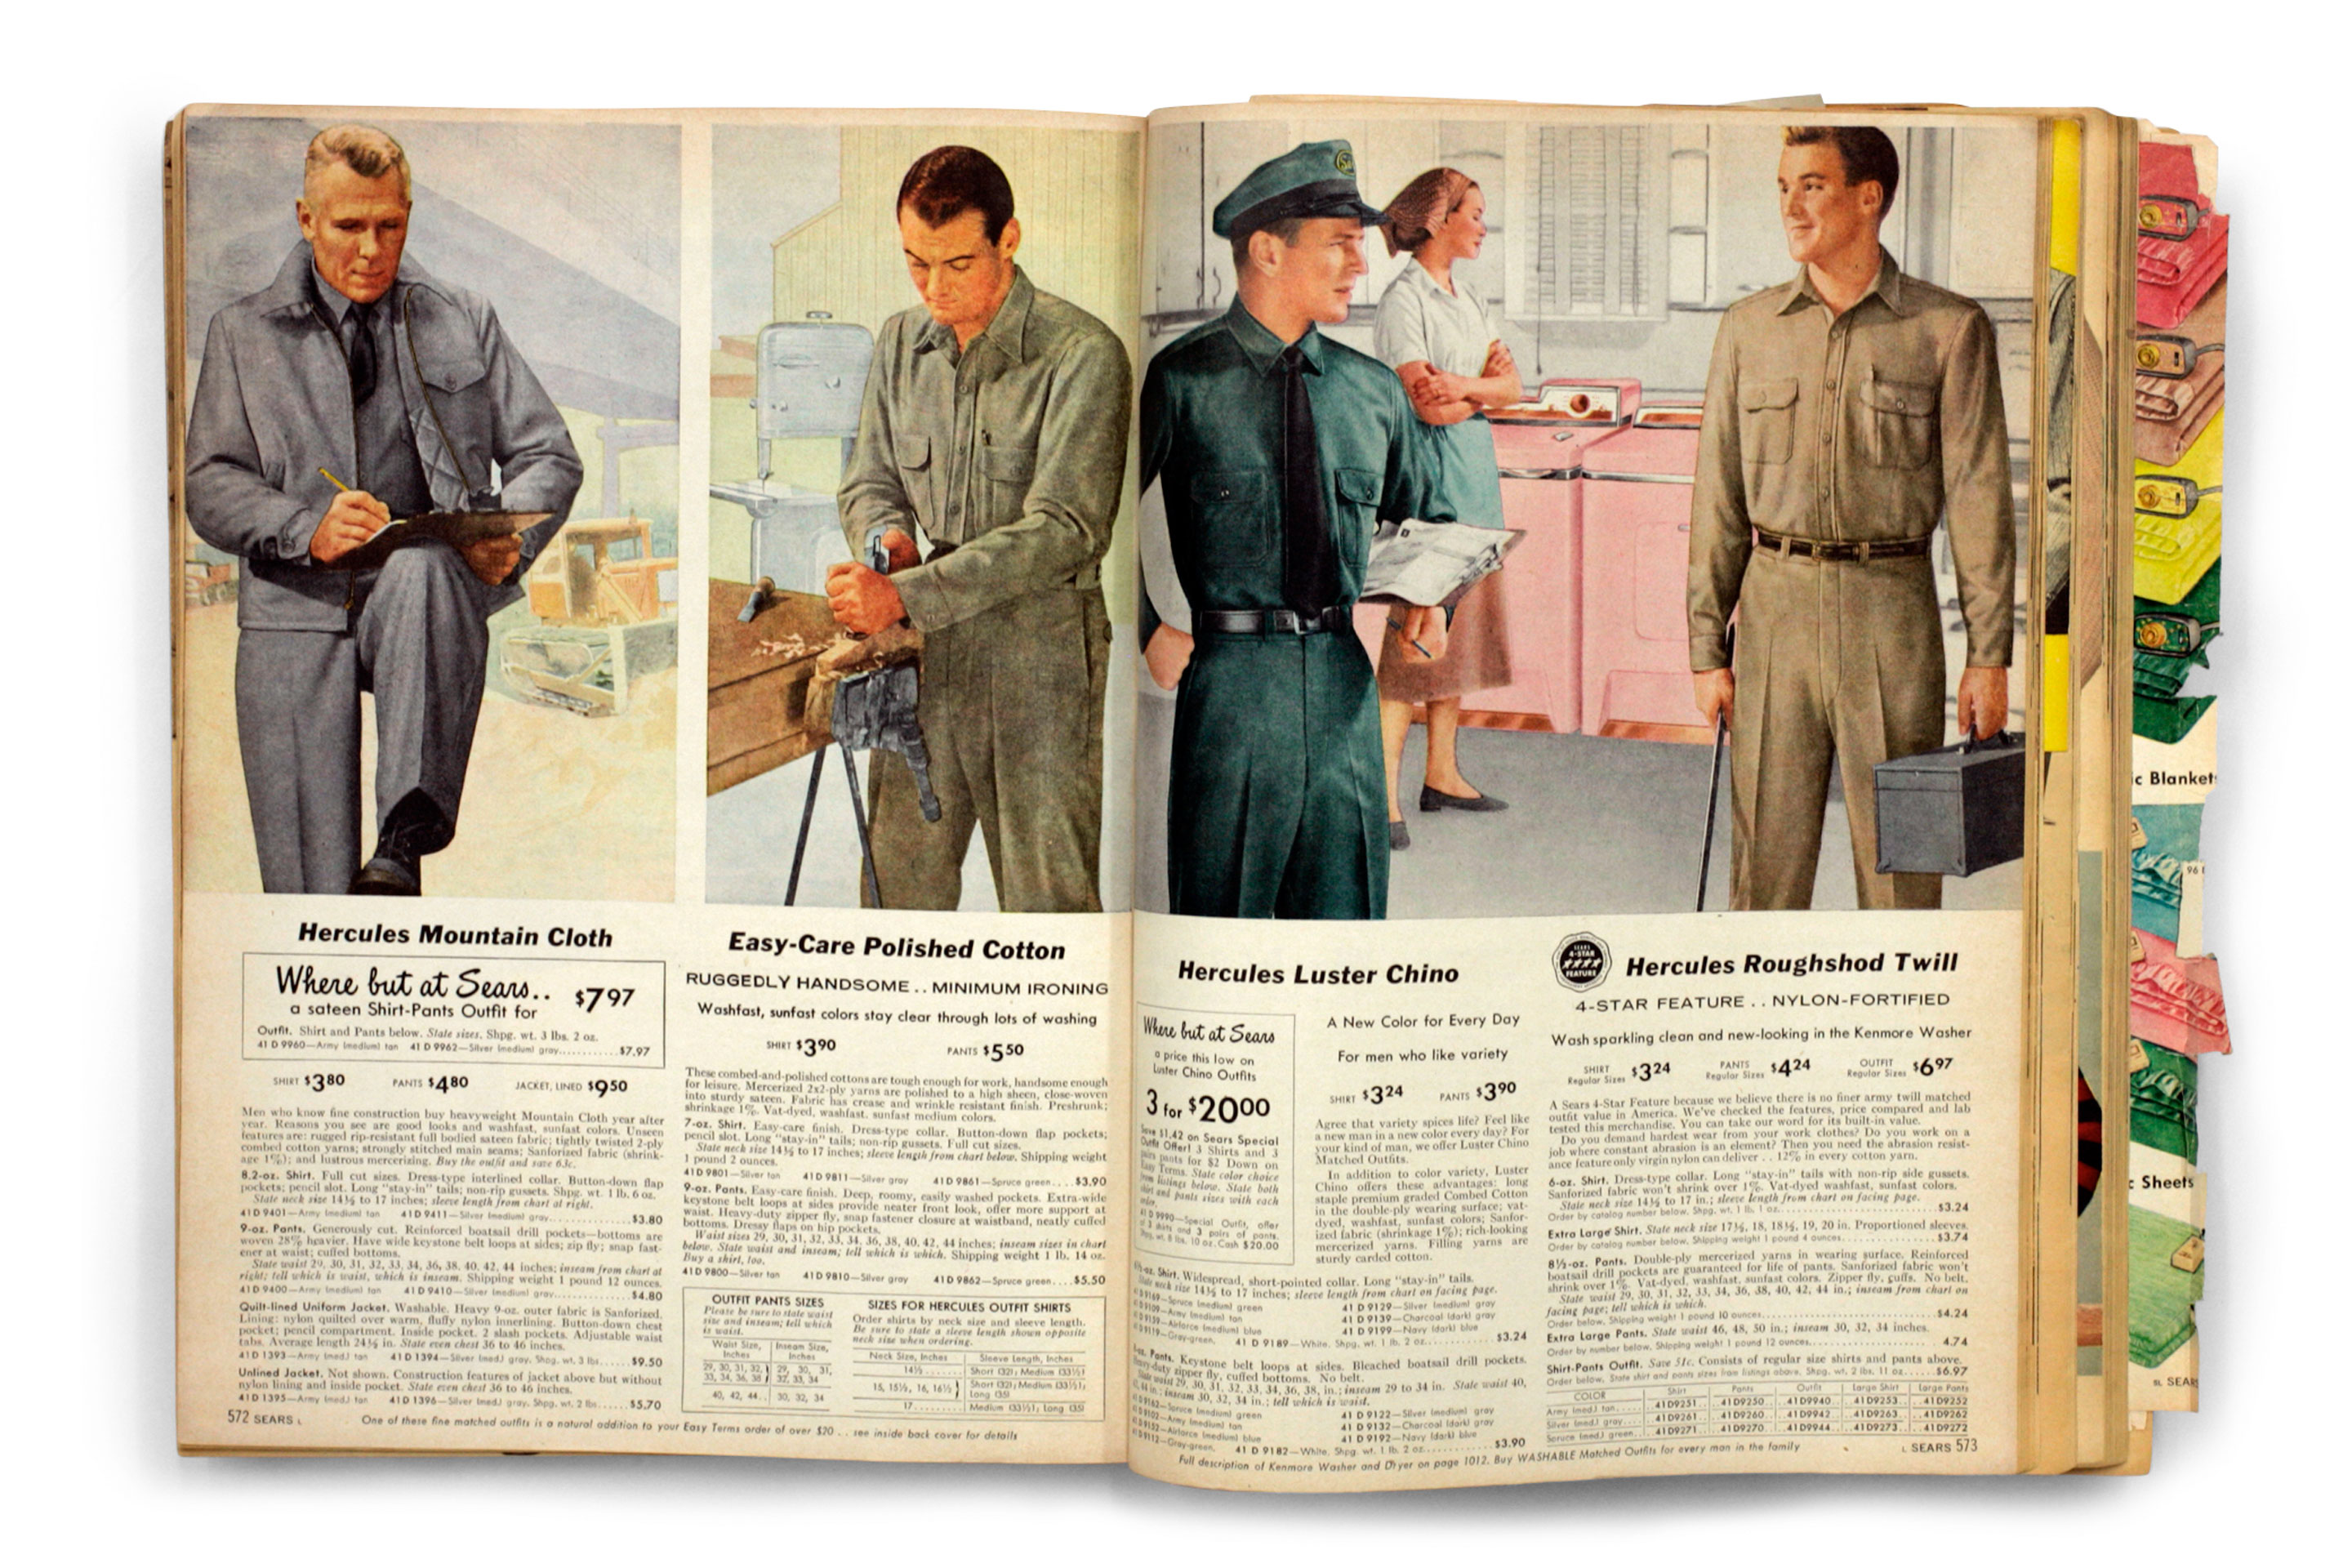 Pages from the 1957 fall/winter Sears catalog.